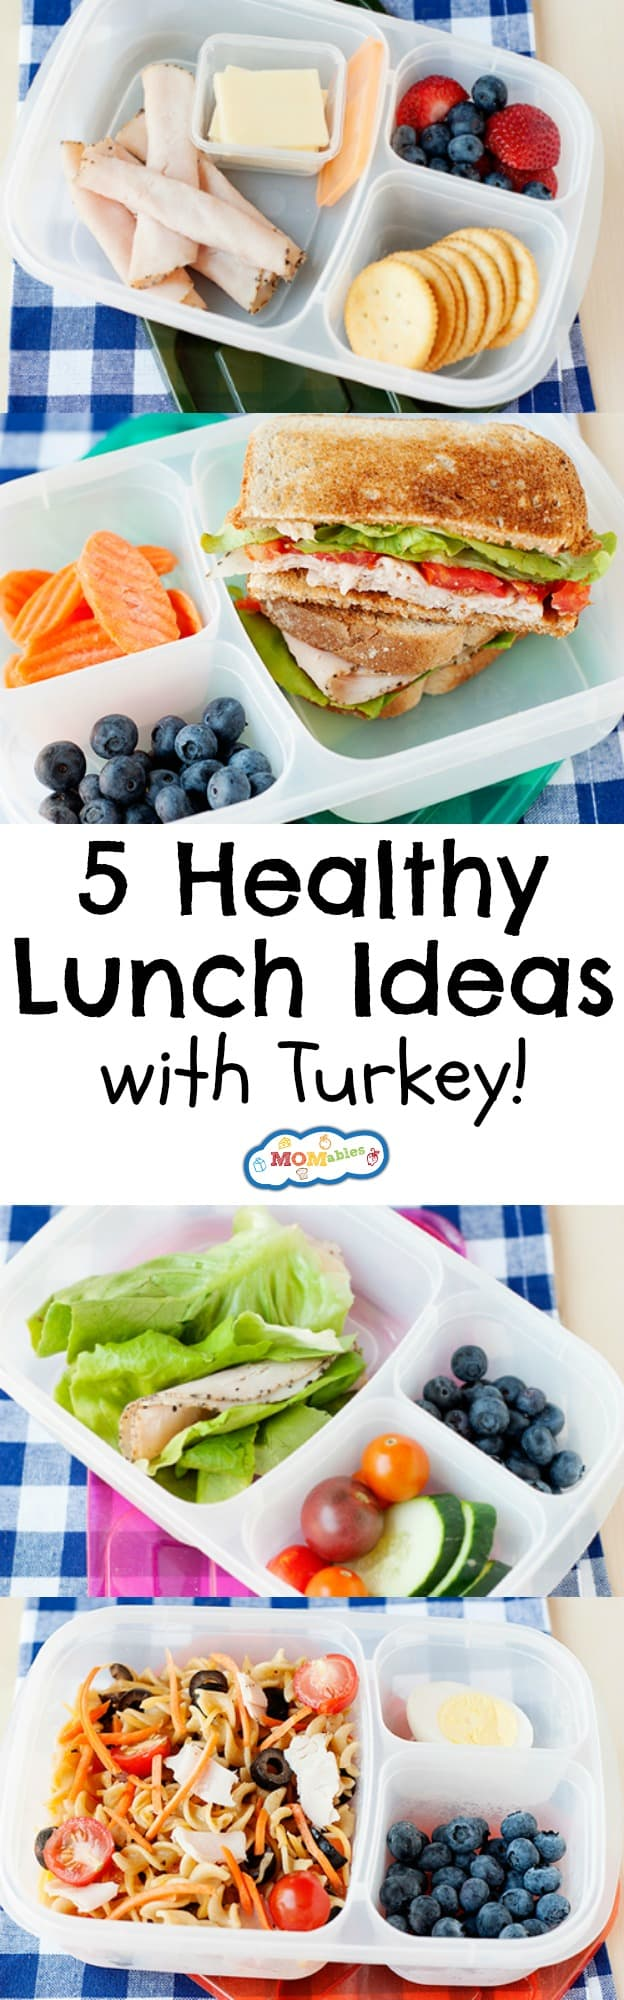 5 healthy school office lunch ideas with turkey 5 healthy school or office lunch ideas with turkey forumfinder